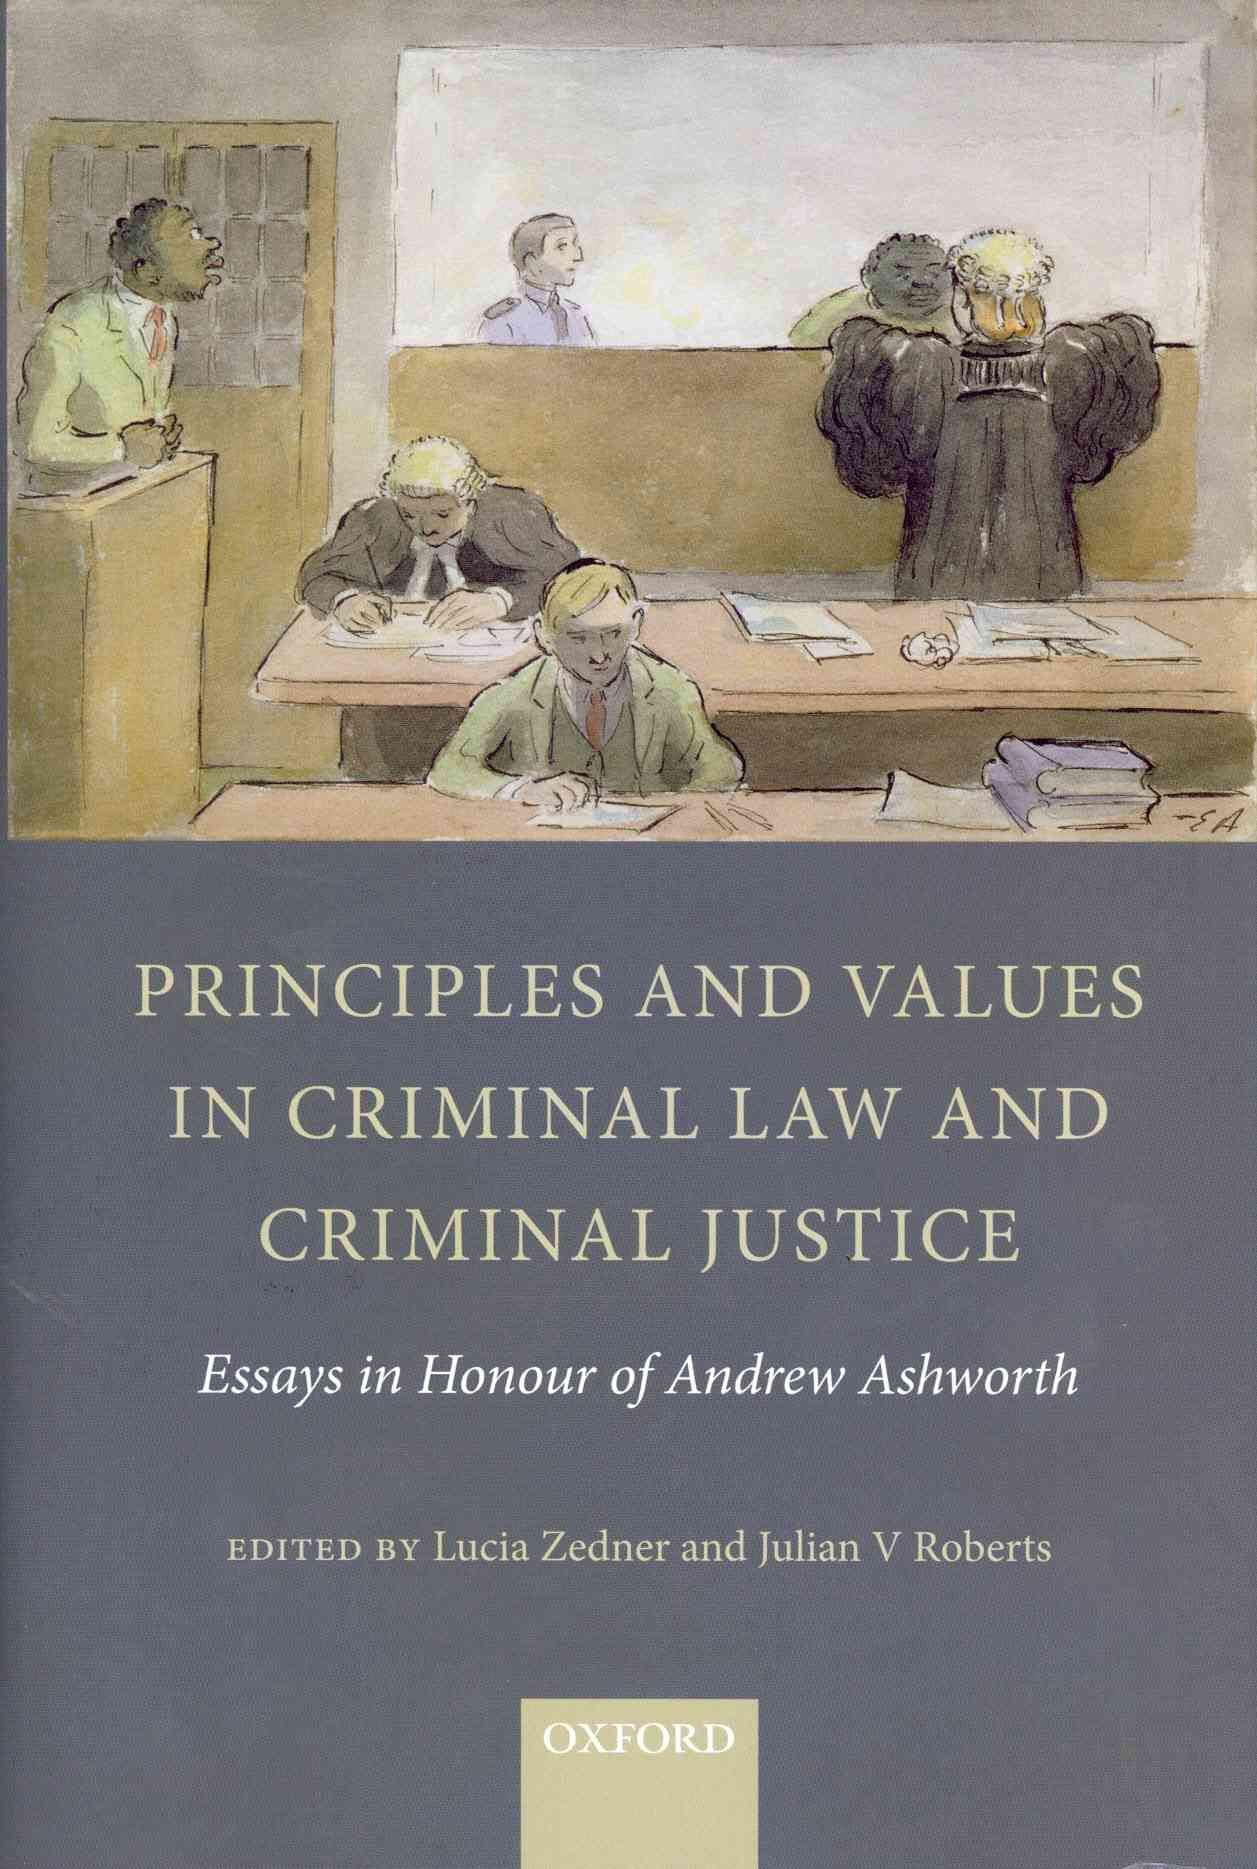 principles and values in criminal law and criminal justice essays principles and values in criminal law and criminal justice essays in honour of andrew ashworth hardcover criminal justice products and law